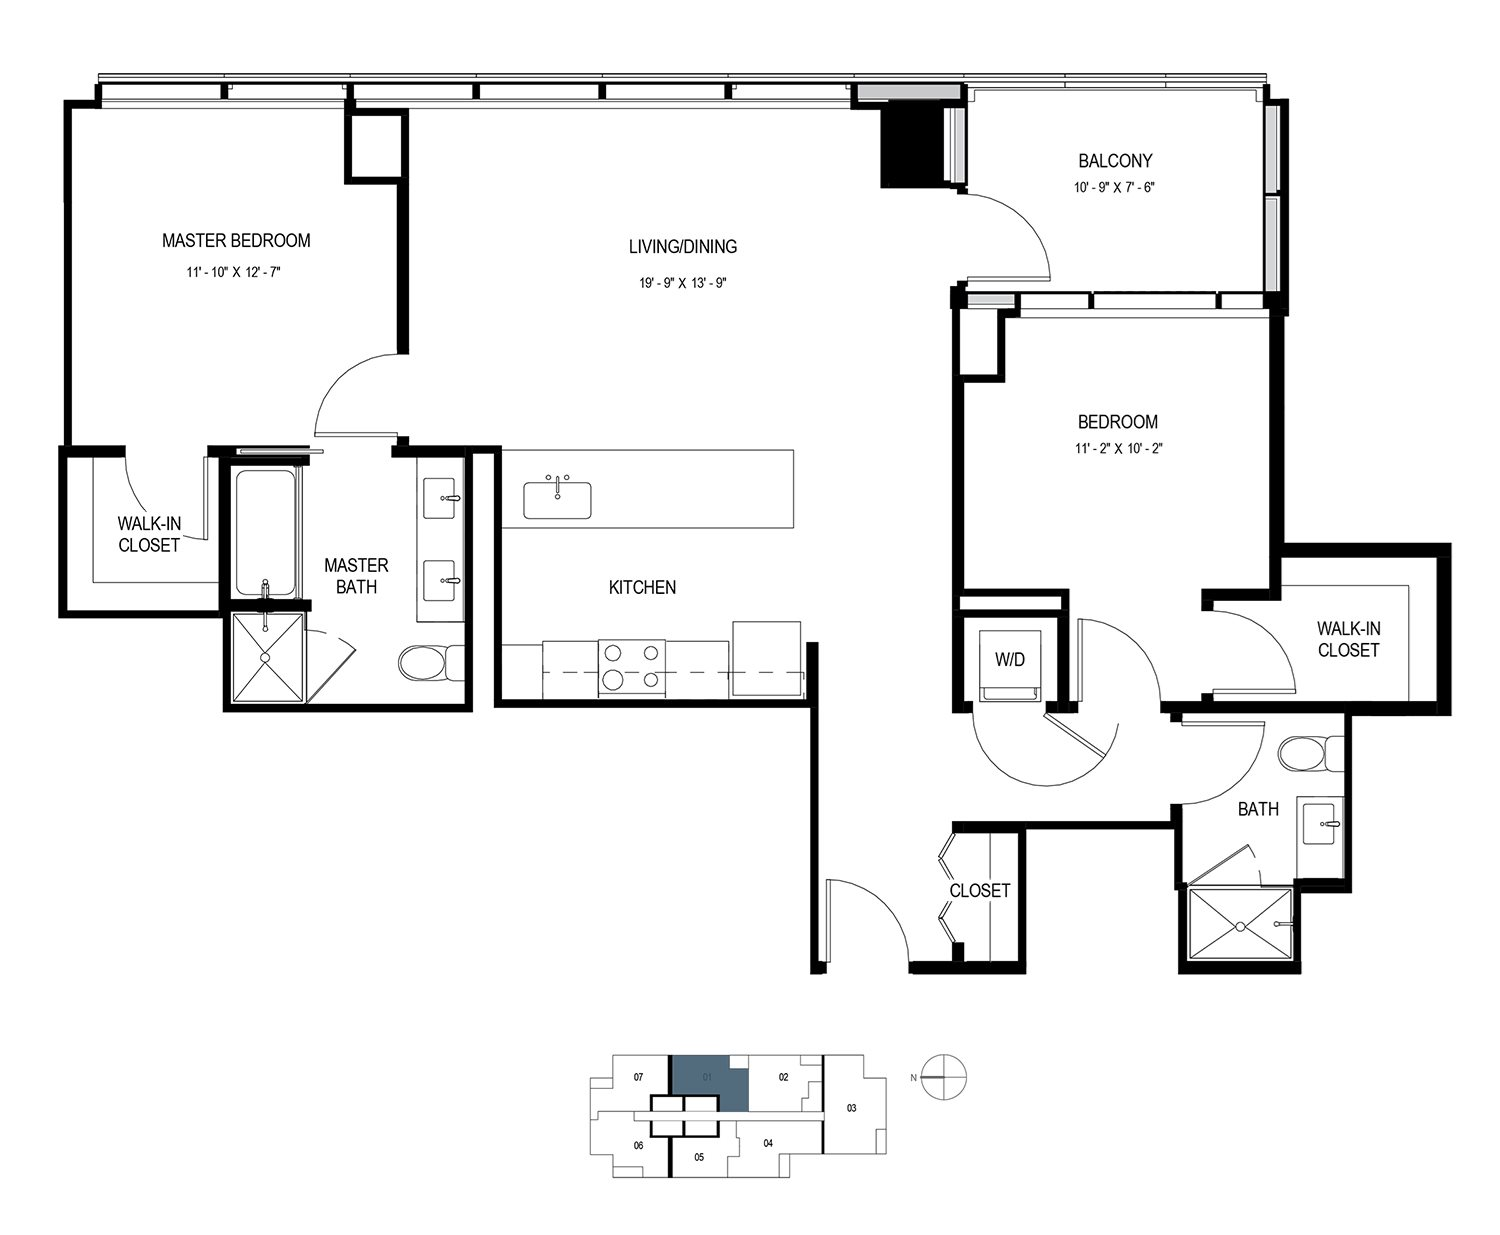 Two Bedroom Penthouse (1158 sf) Floor Plan 13